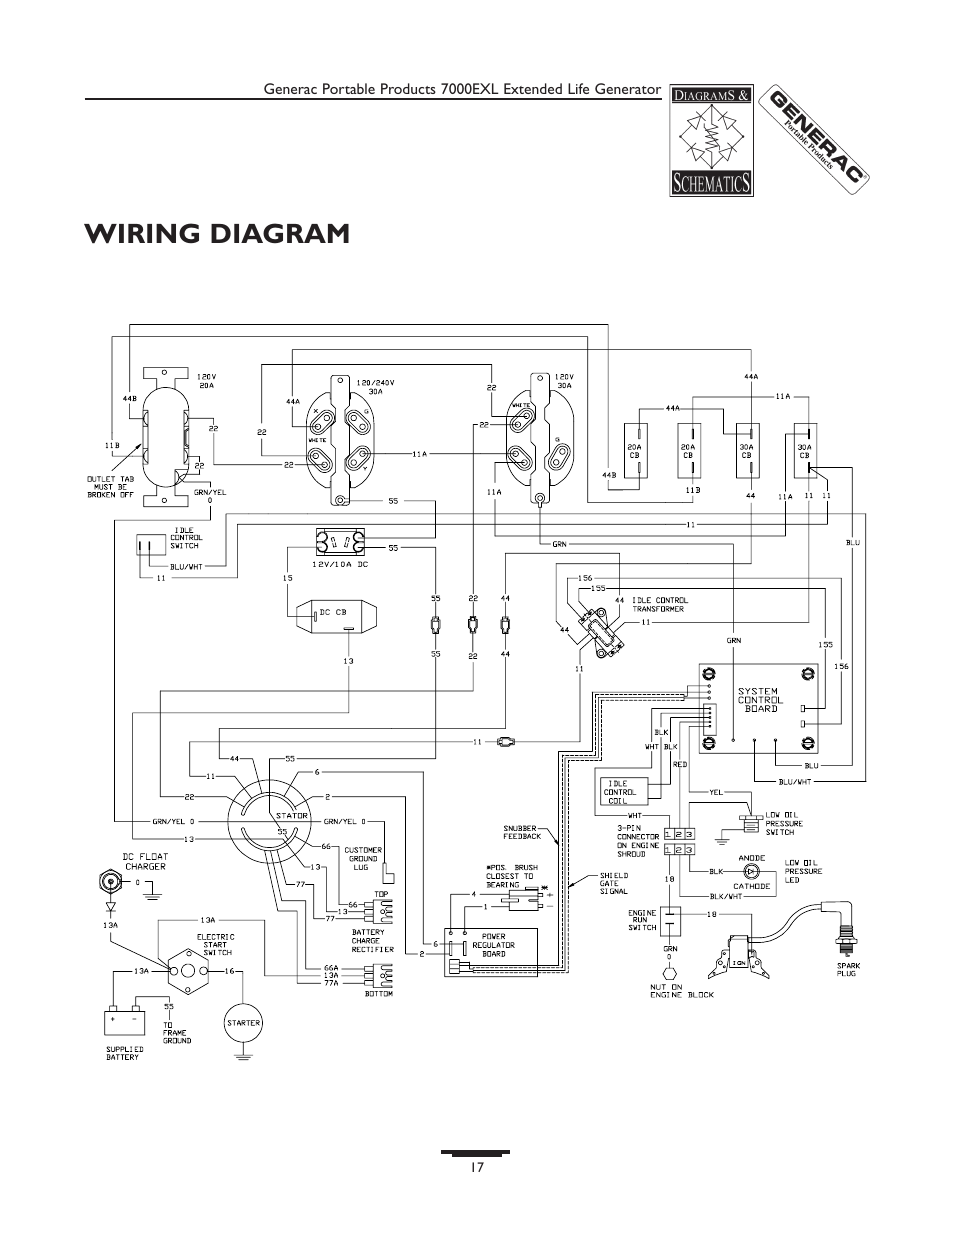 Wiring Diagram Generac 7000exl User Manual Page 17 24